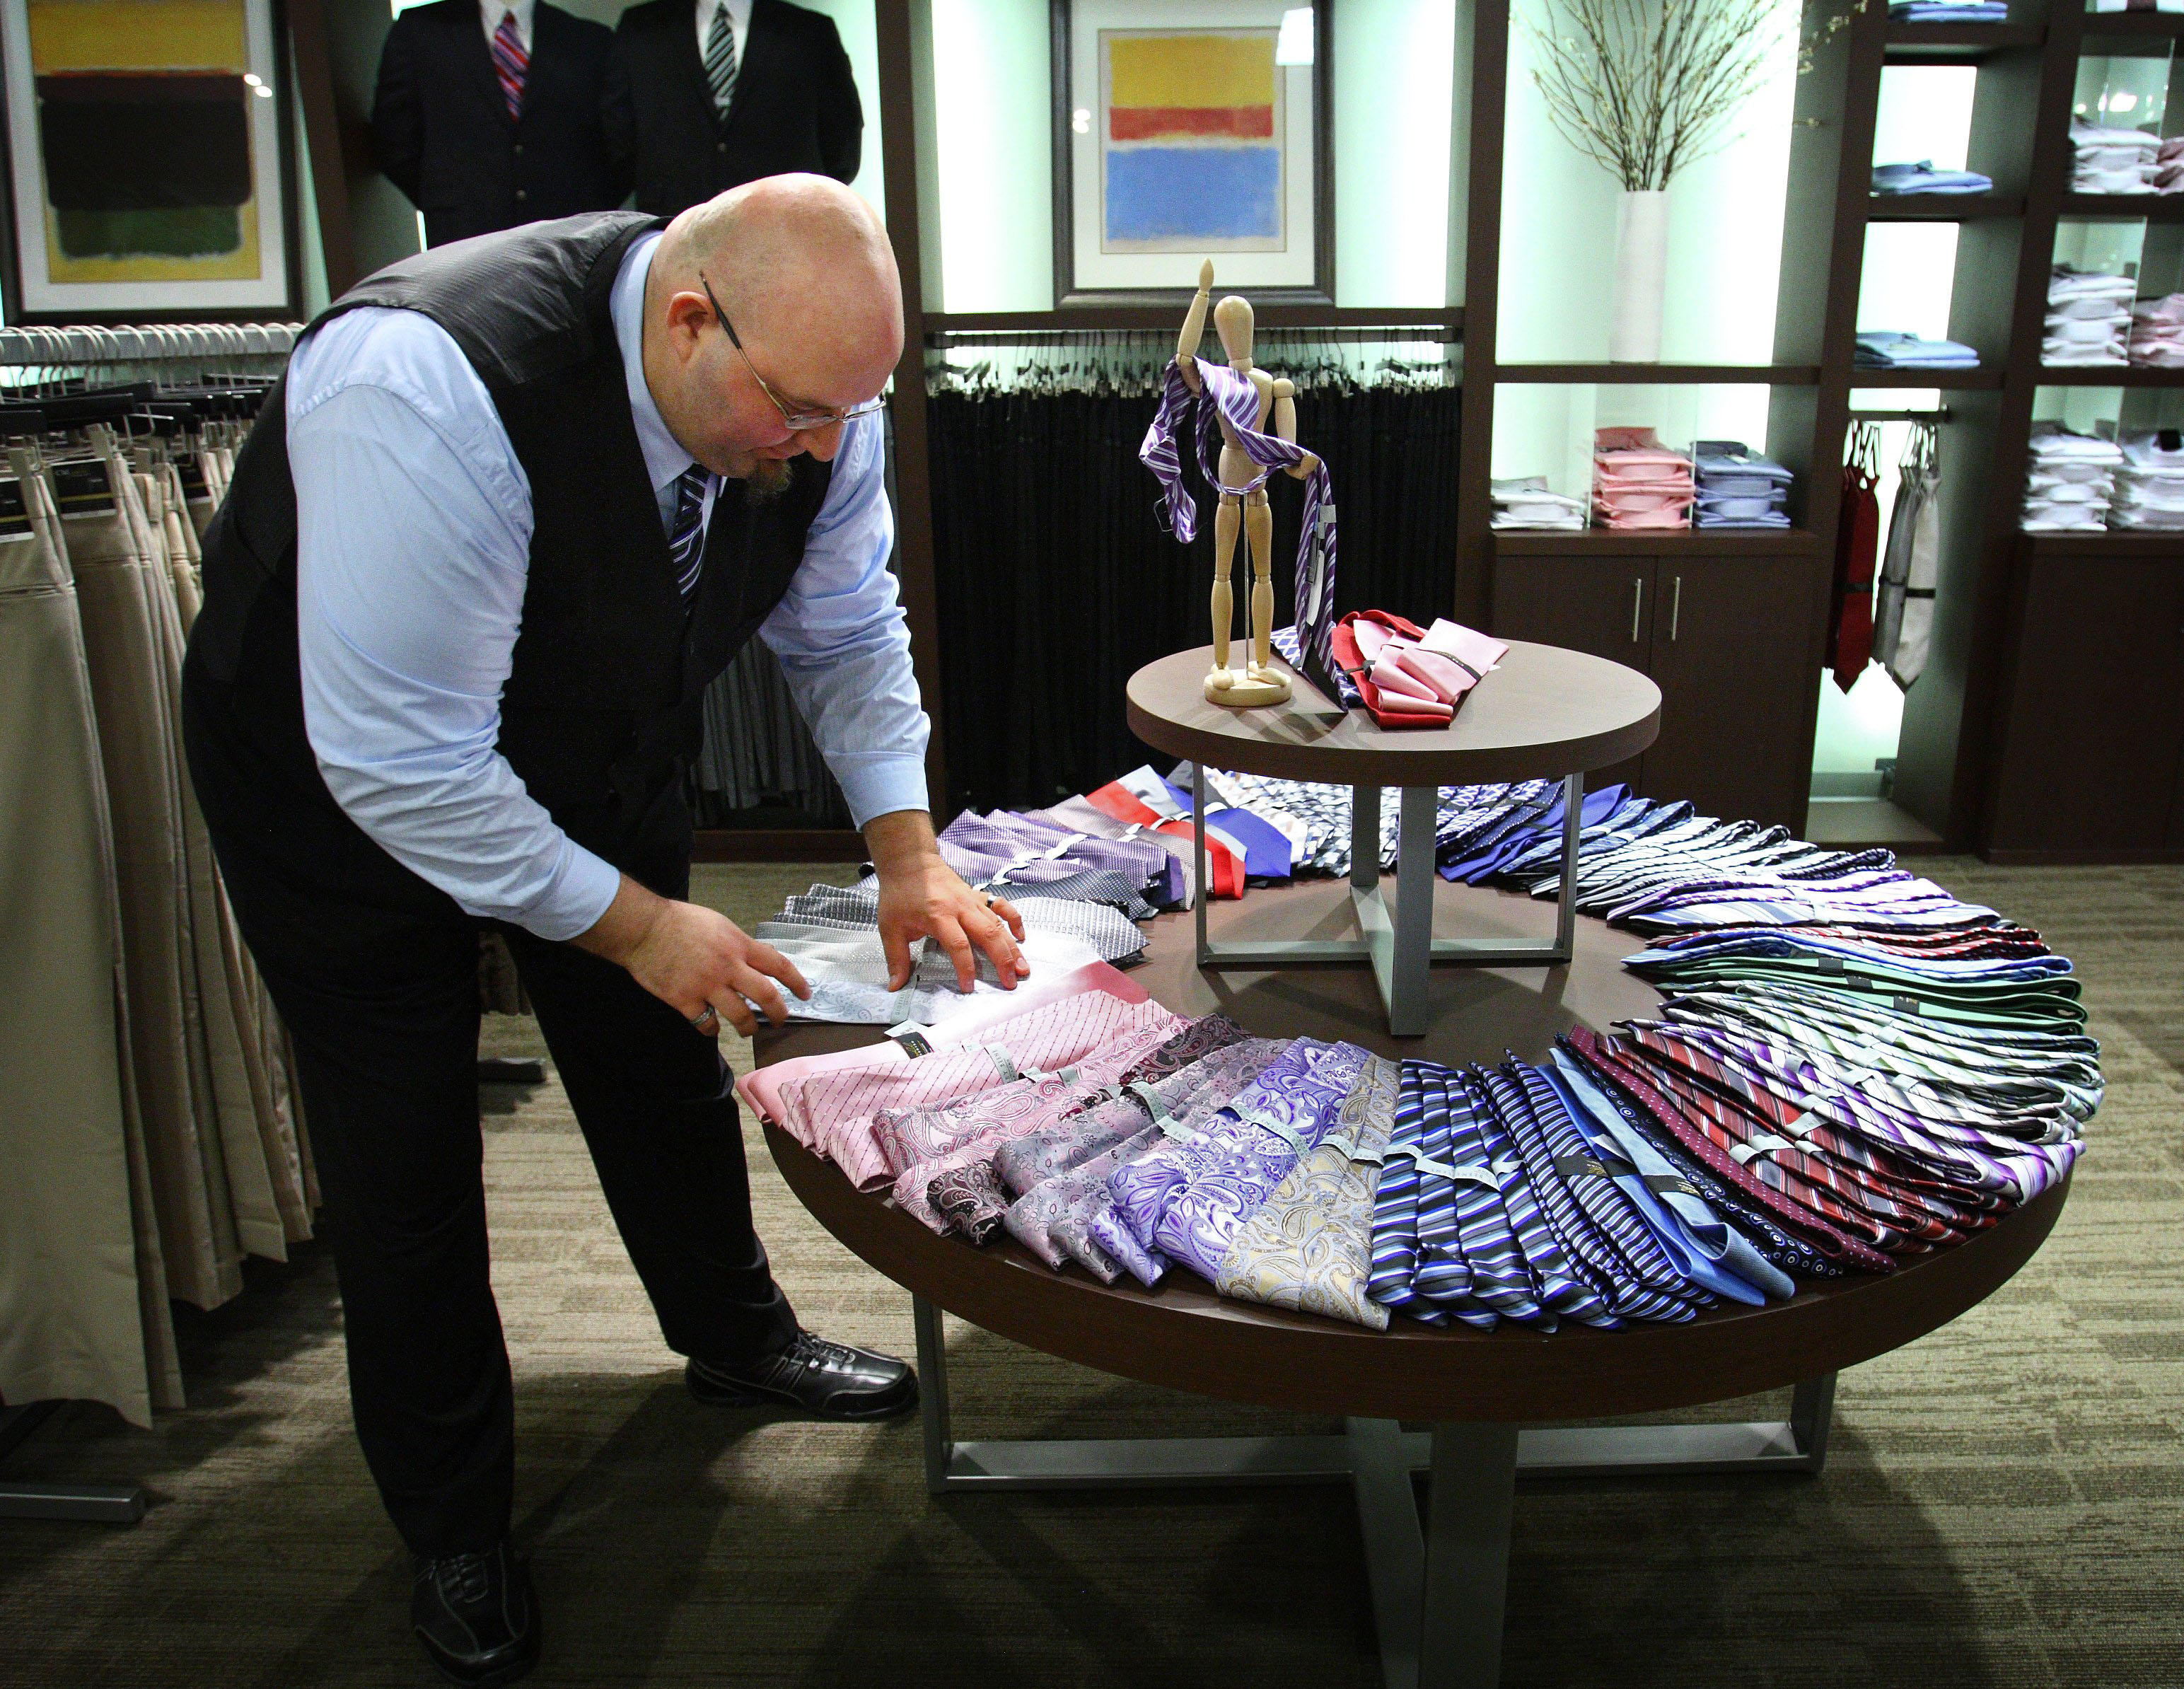 Aug. 05, 2010 - Memphis, TN, U.S. - -August 5, 2010 - Brian Hackney, a Casual Male store manager from Nashville, straightens ties while helping set up the Destination XL store in the East Gate Shopping Center. The new men's superstore concept catering to